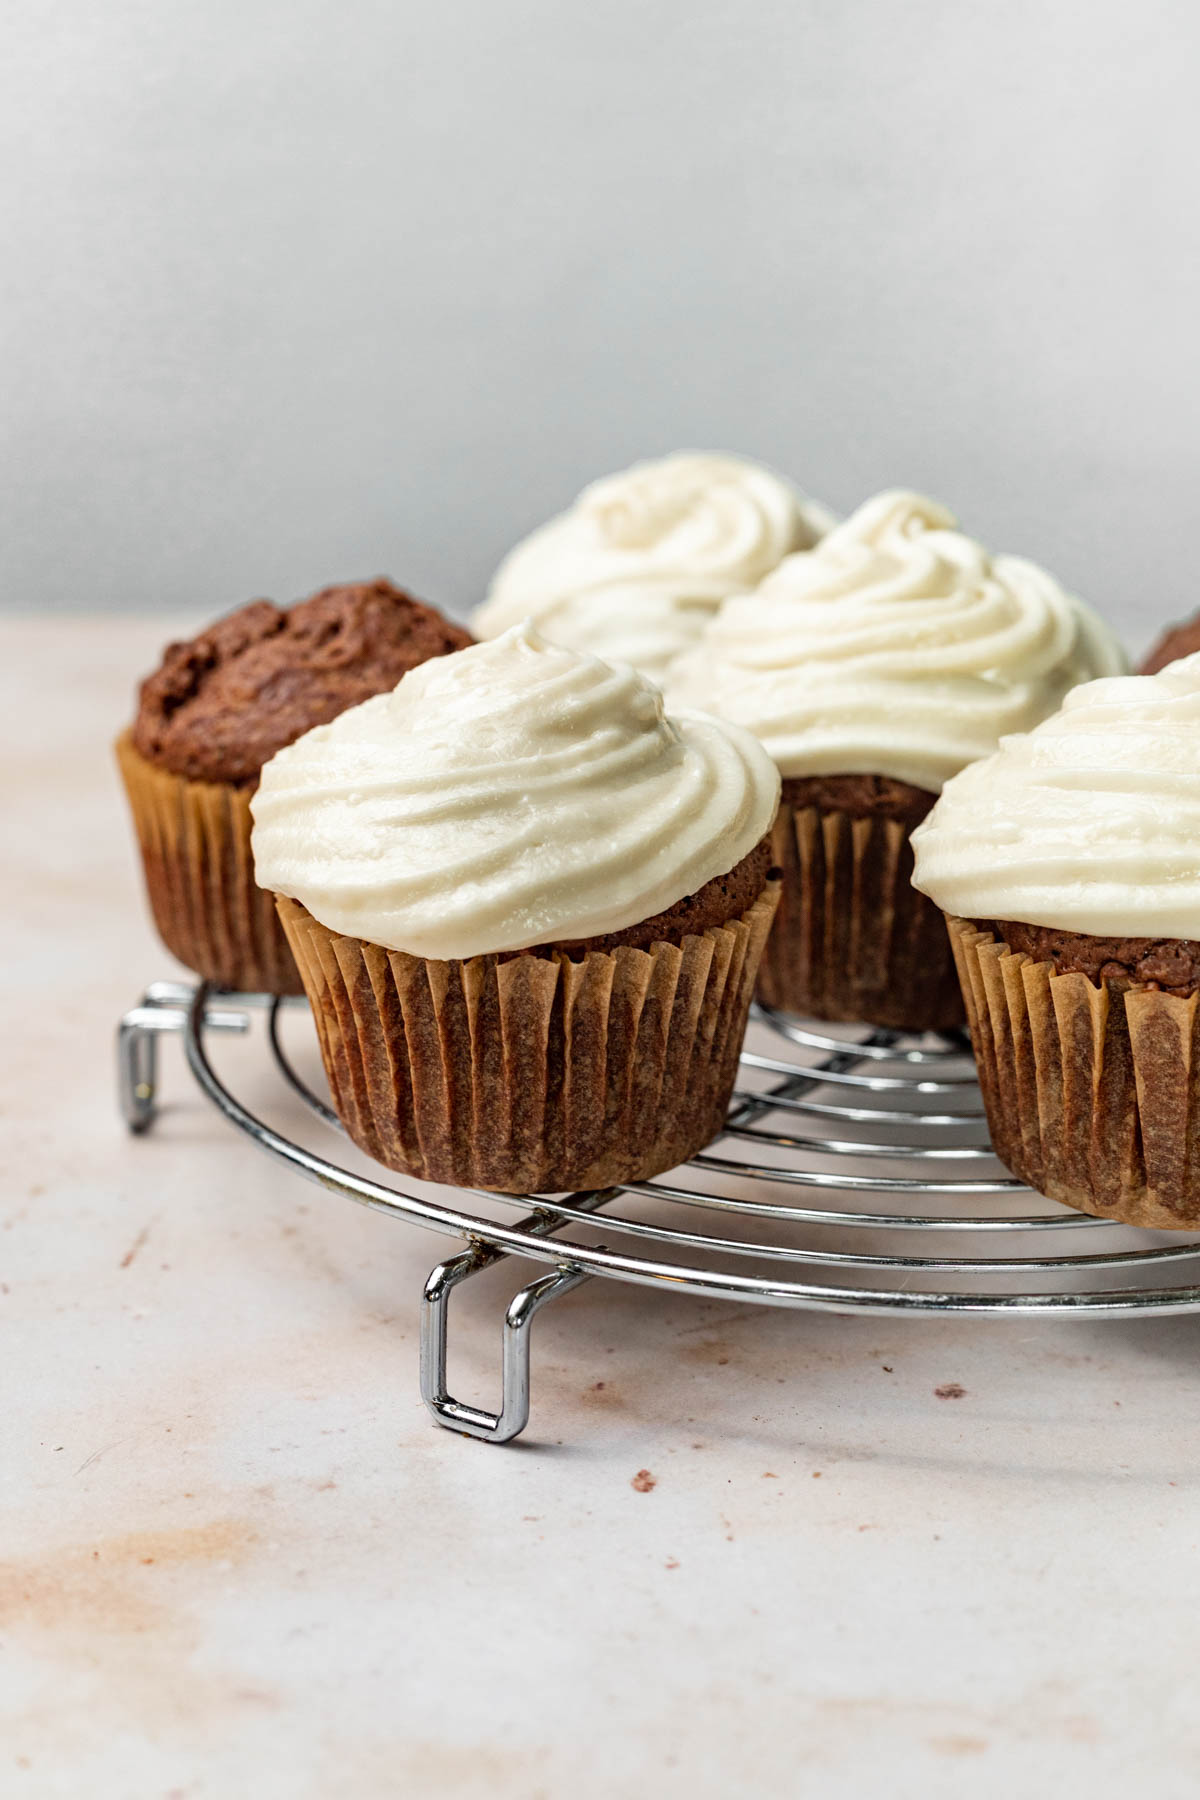 Cupcakes topped with frosting on a cooling rack.